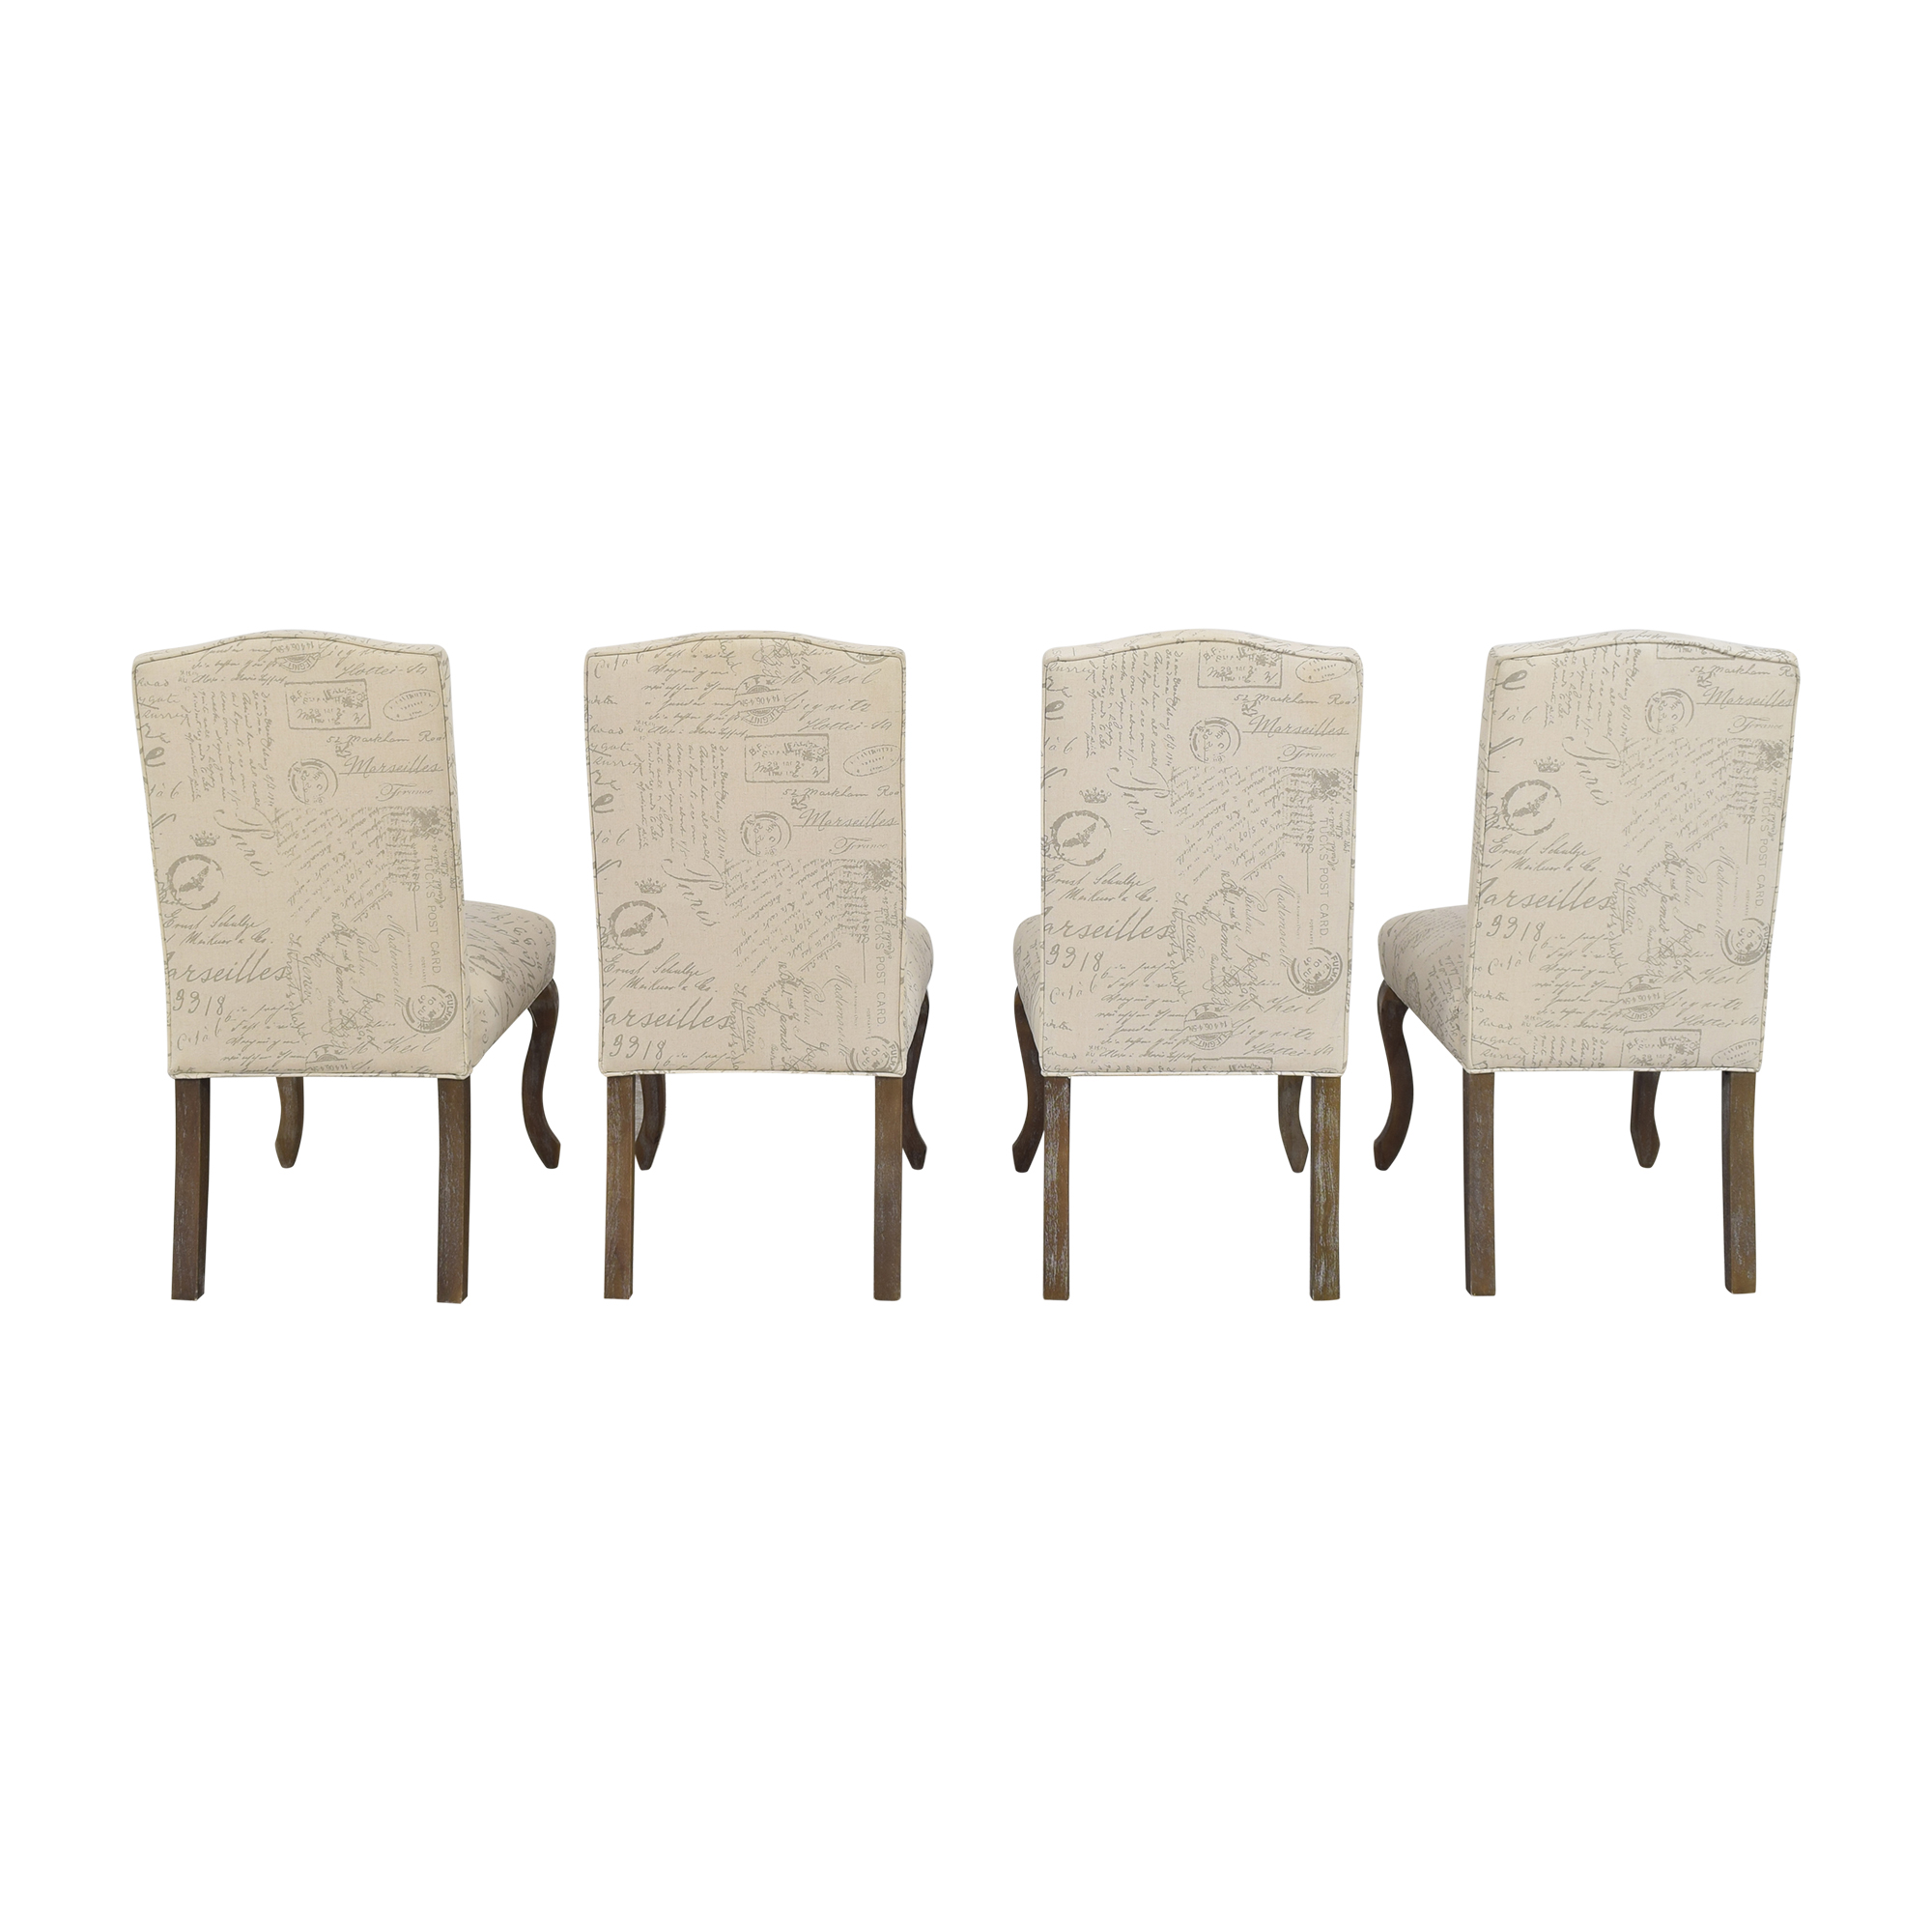 buy Noble House French Script Dining Chairs Noble House Dining Chairs